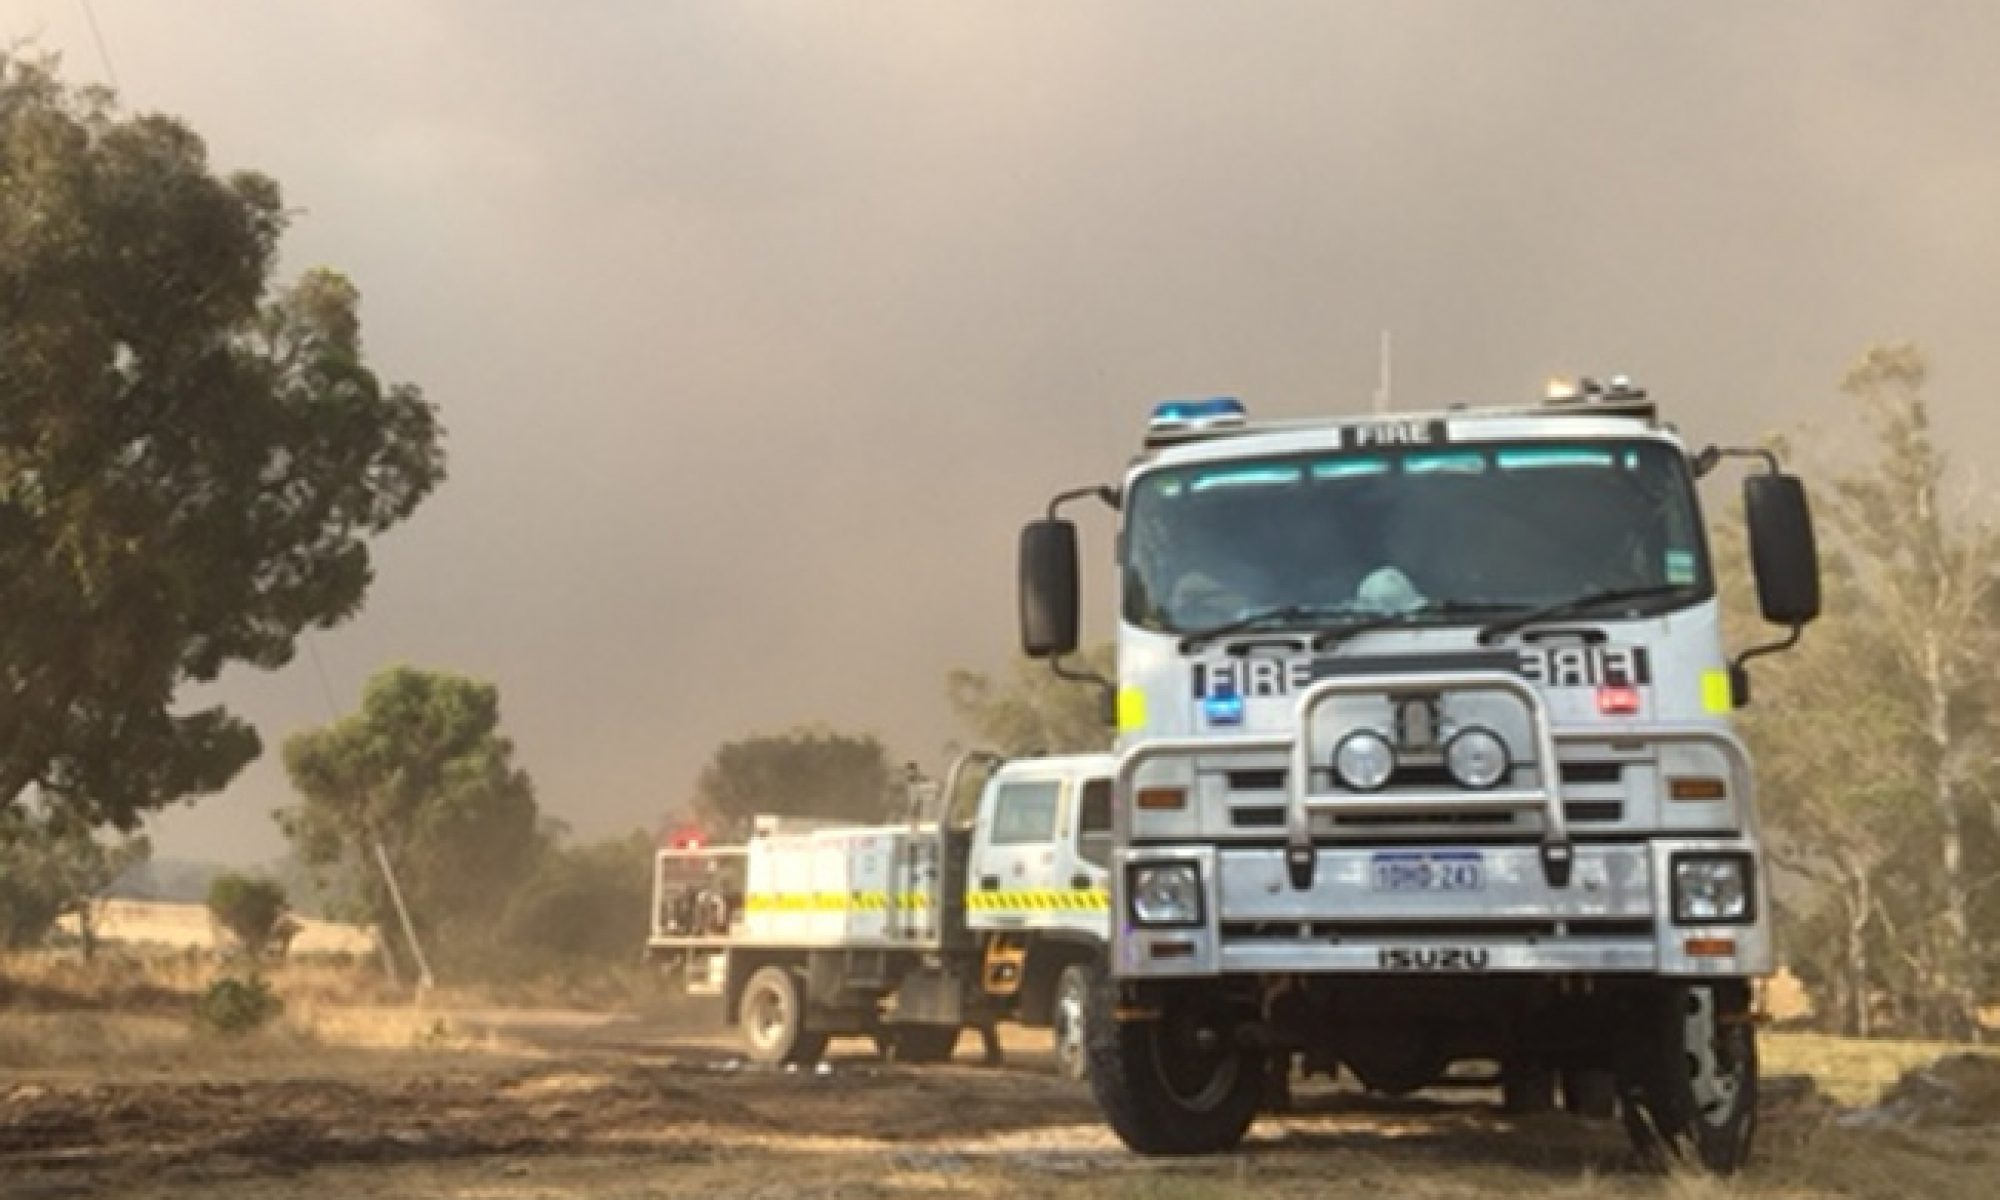 Yallingup Rural Volunteer Bush Fire Brigade